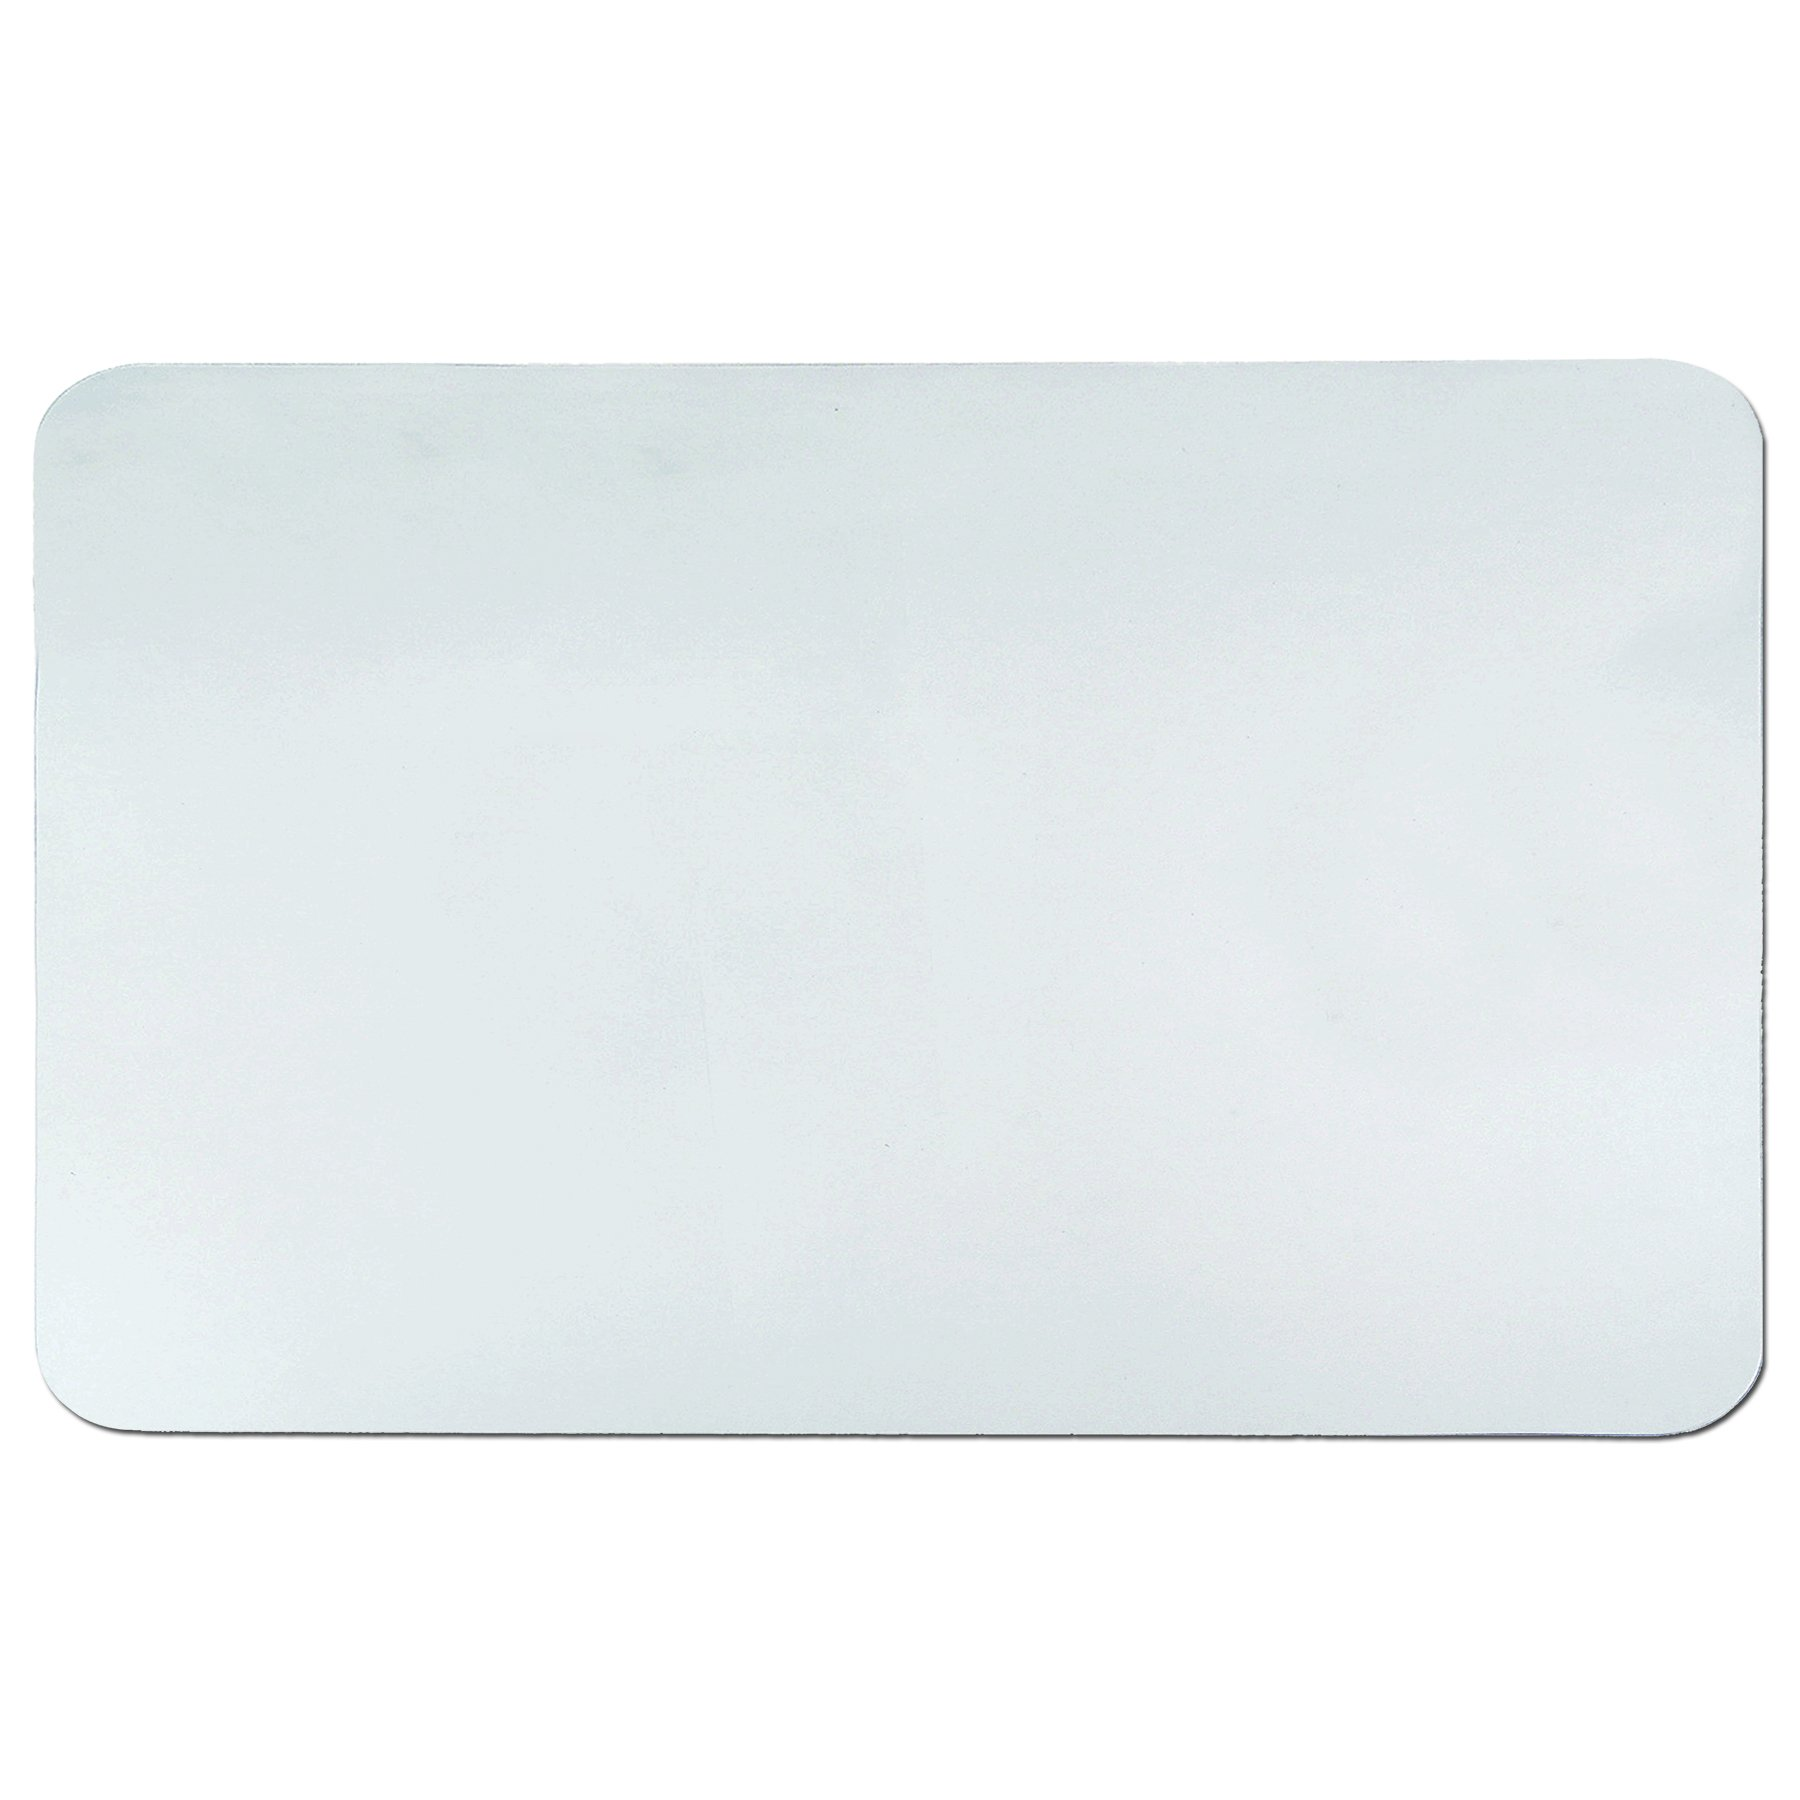 Artistic 24'' x 38'' Krystal View Clear Antimicrobial Desk Pad Organizer with Microban, Clear